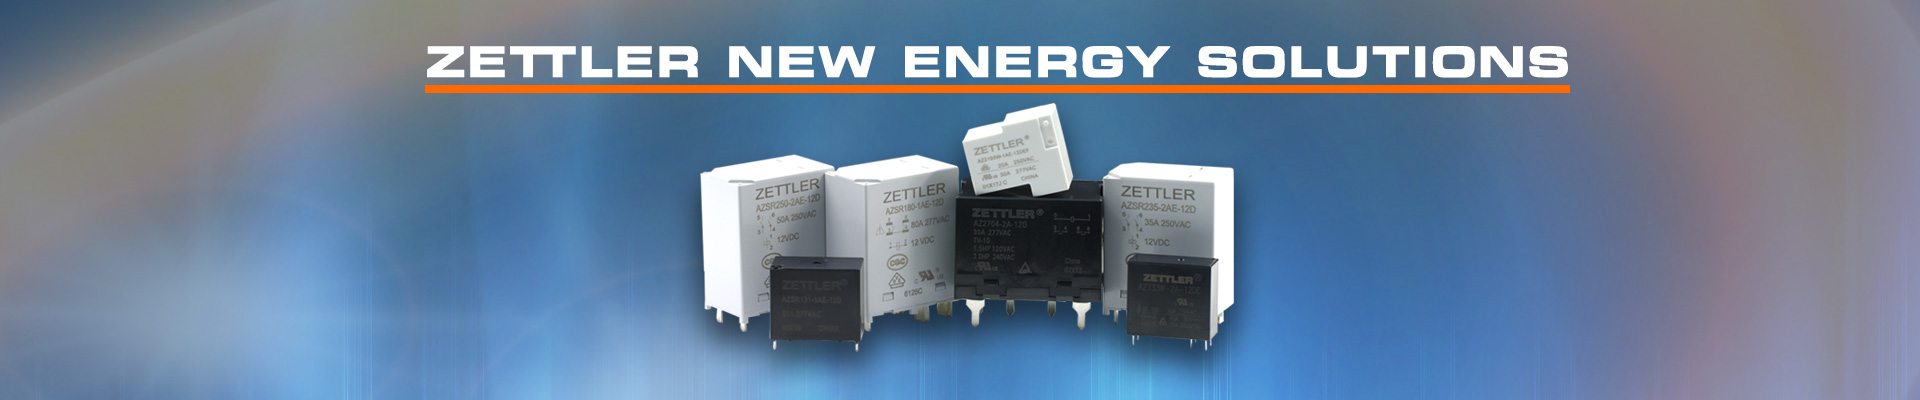 ZETTLER Group New Energy Solutions